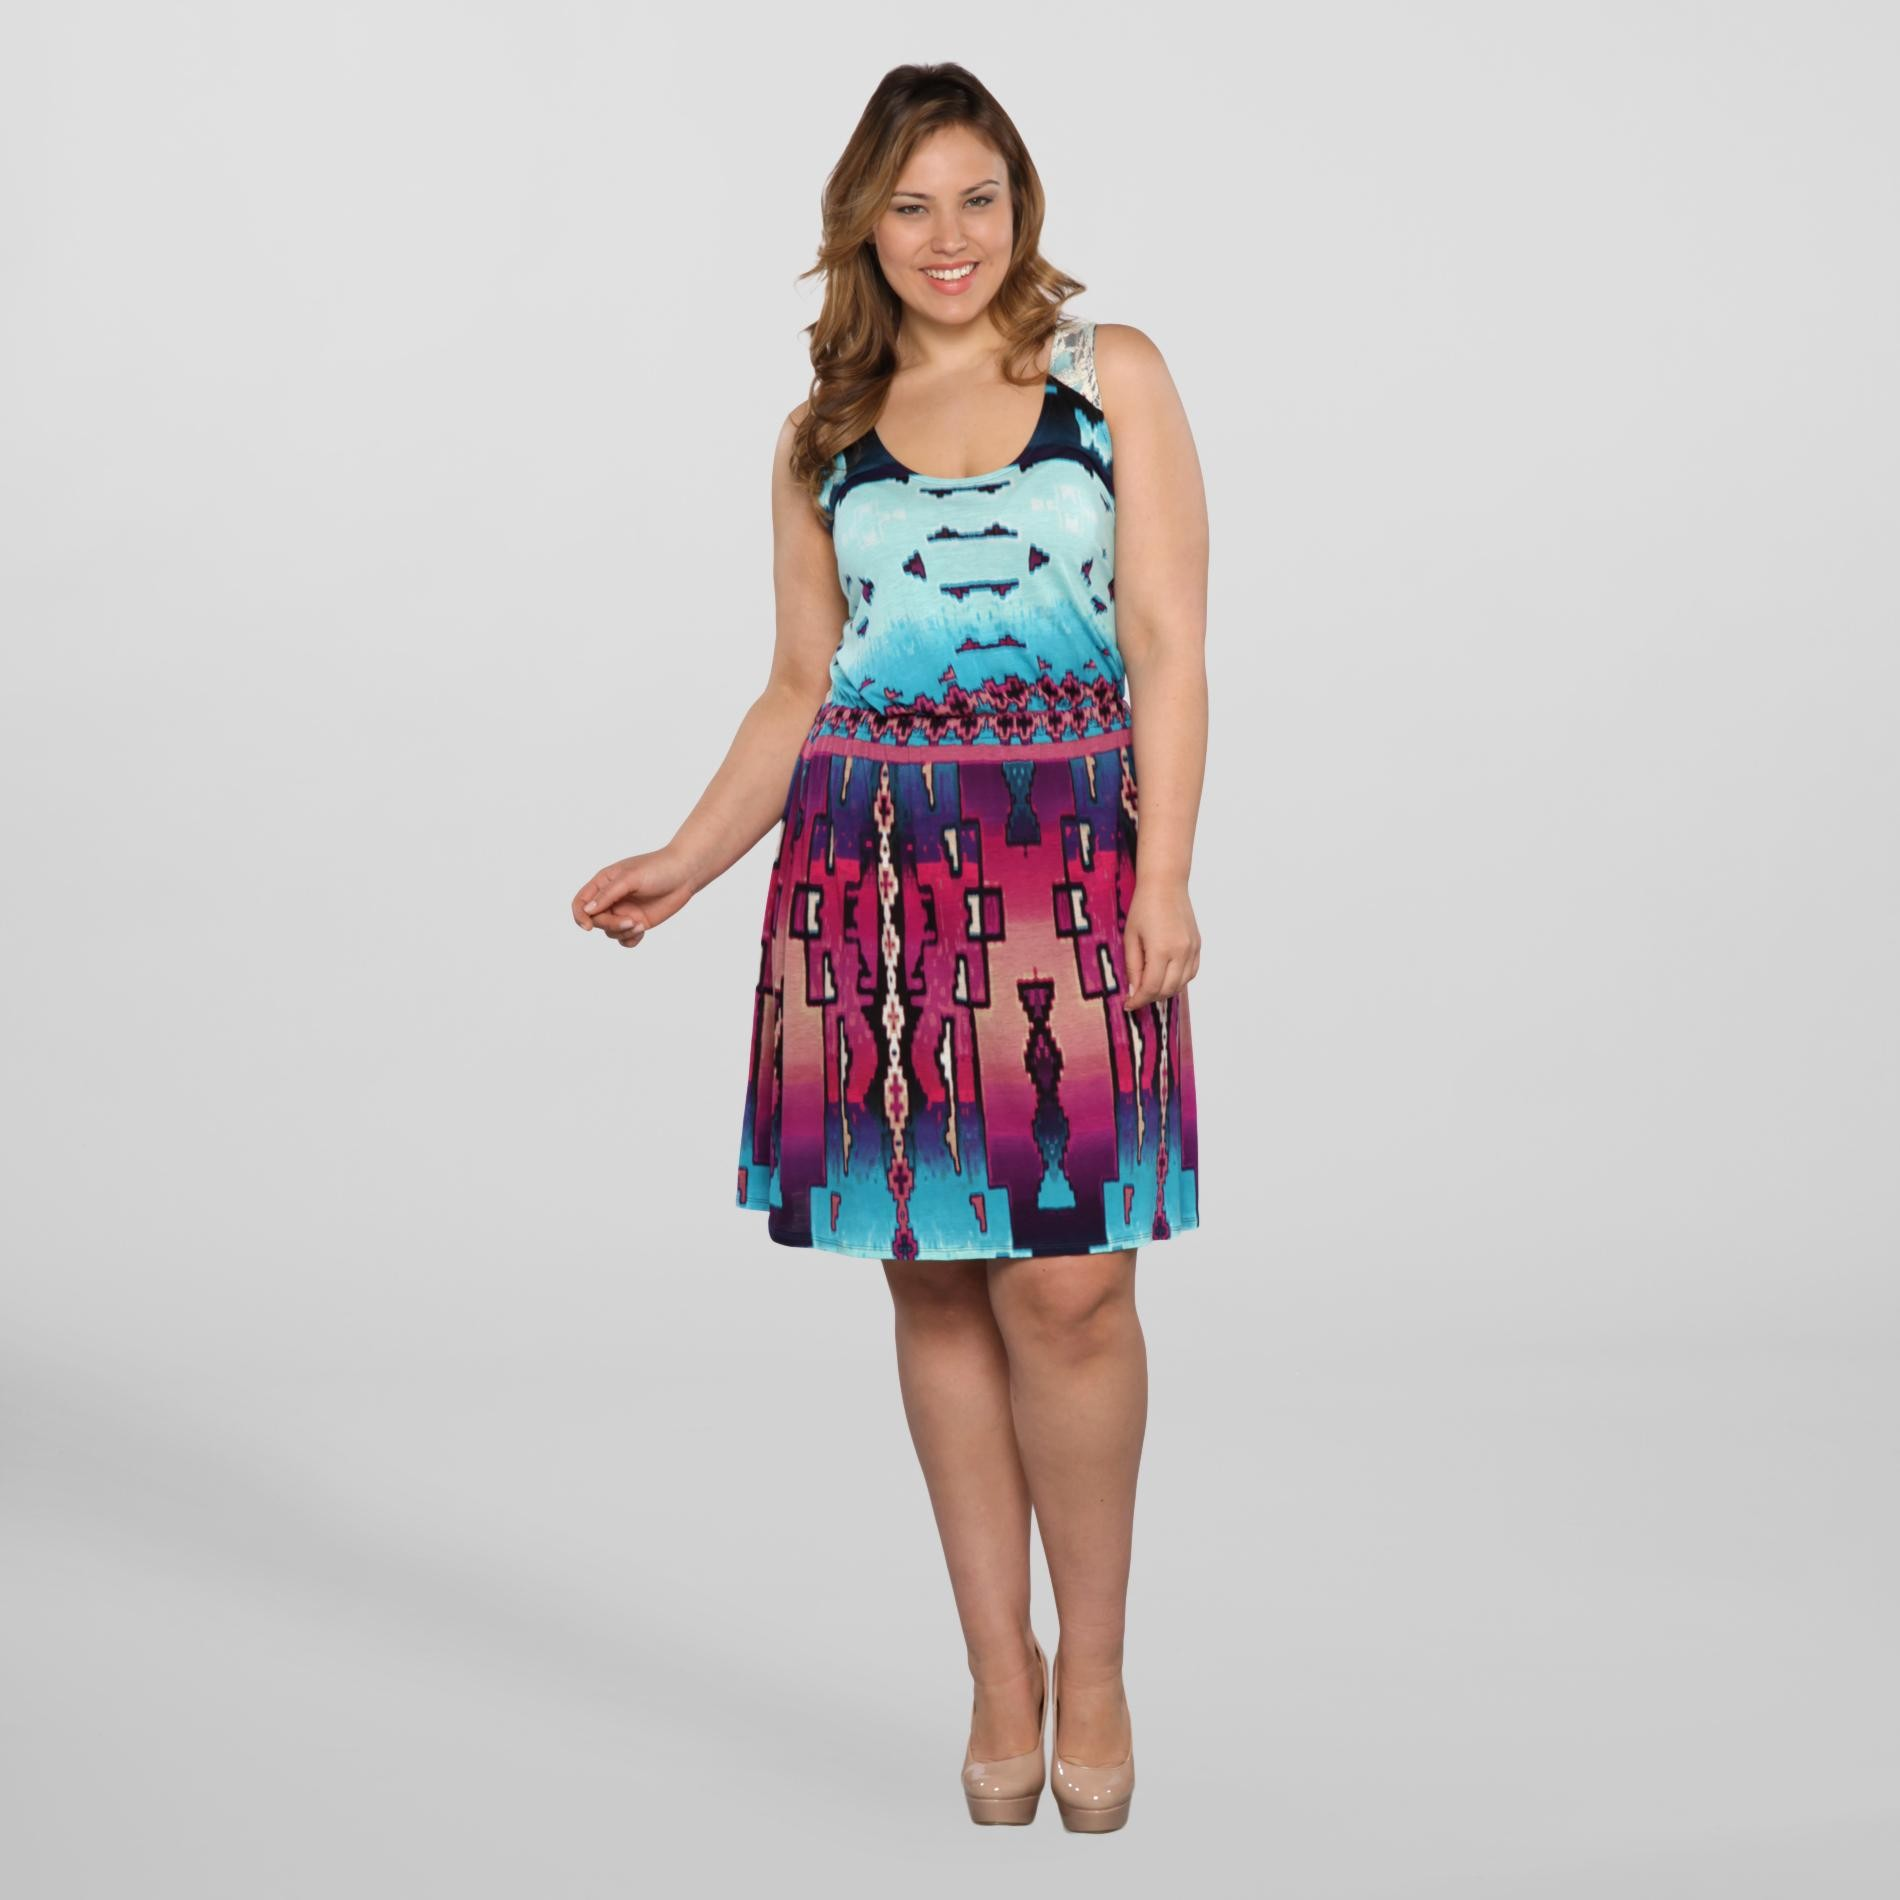 Love Your Style, Love Your Size Women's Plus Tank Dress - Tribal at Kmart.com